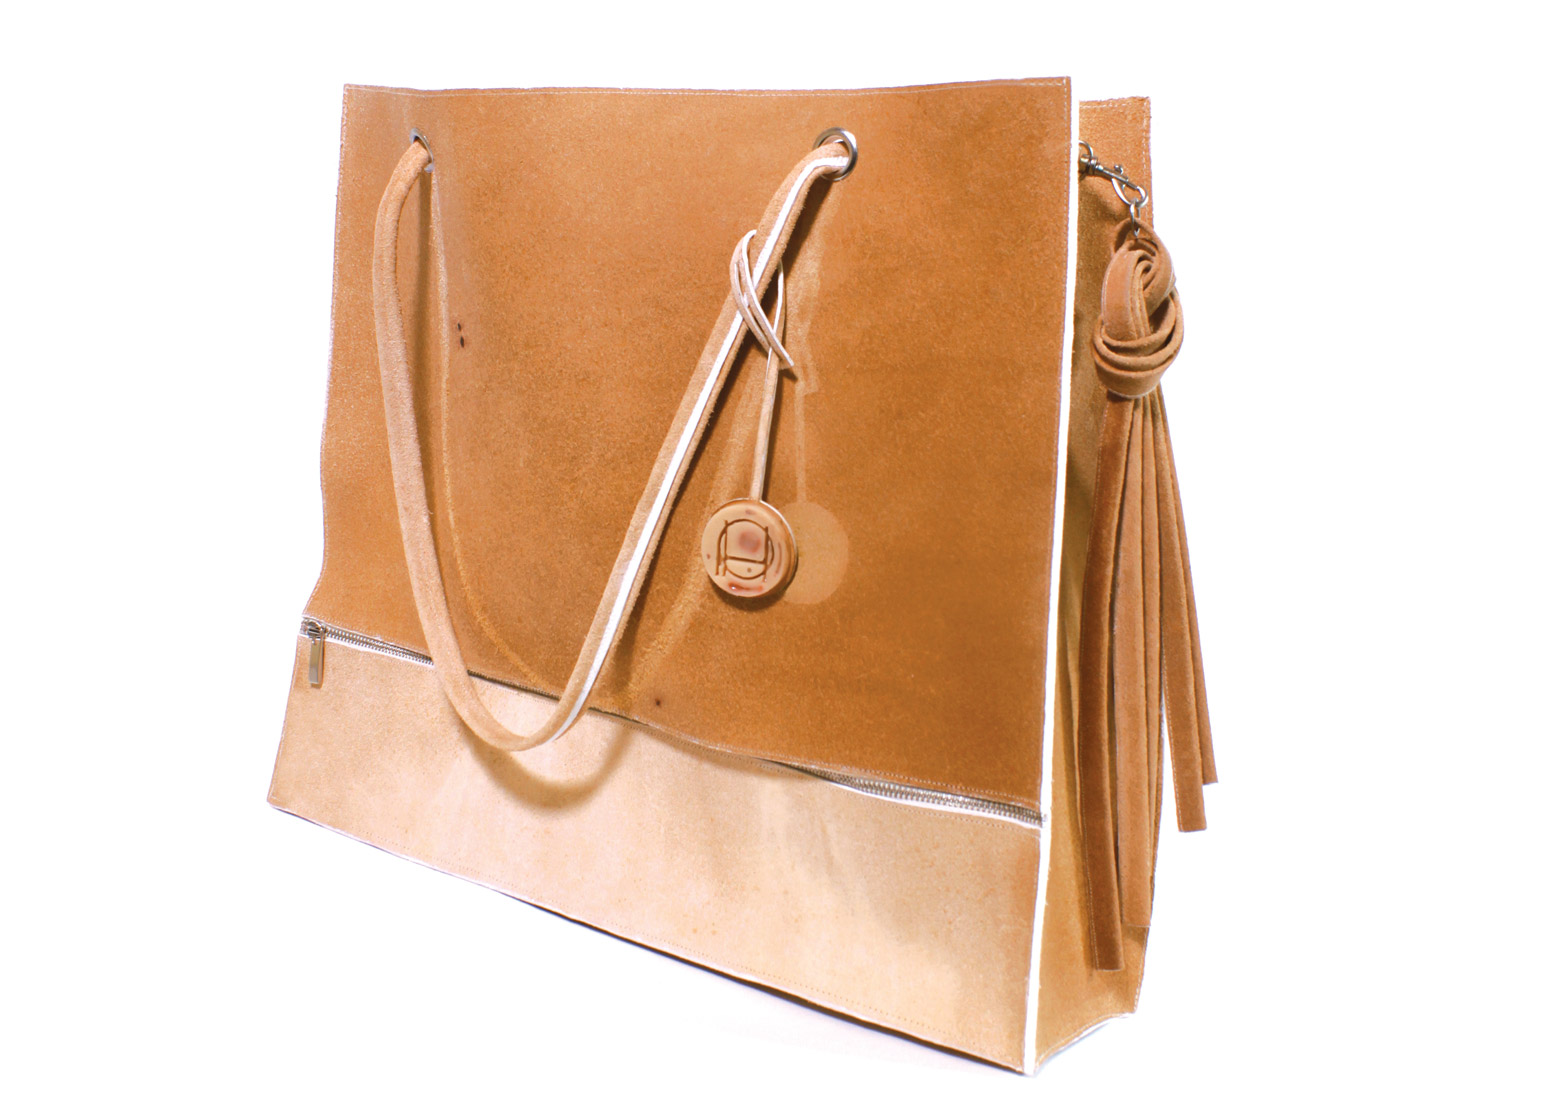 Alexander Mcqueen S Skin Is Being Used For Bags